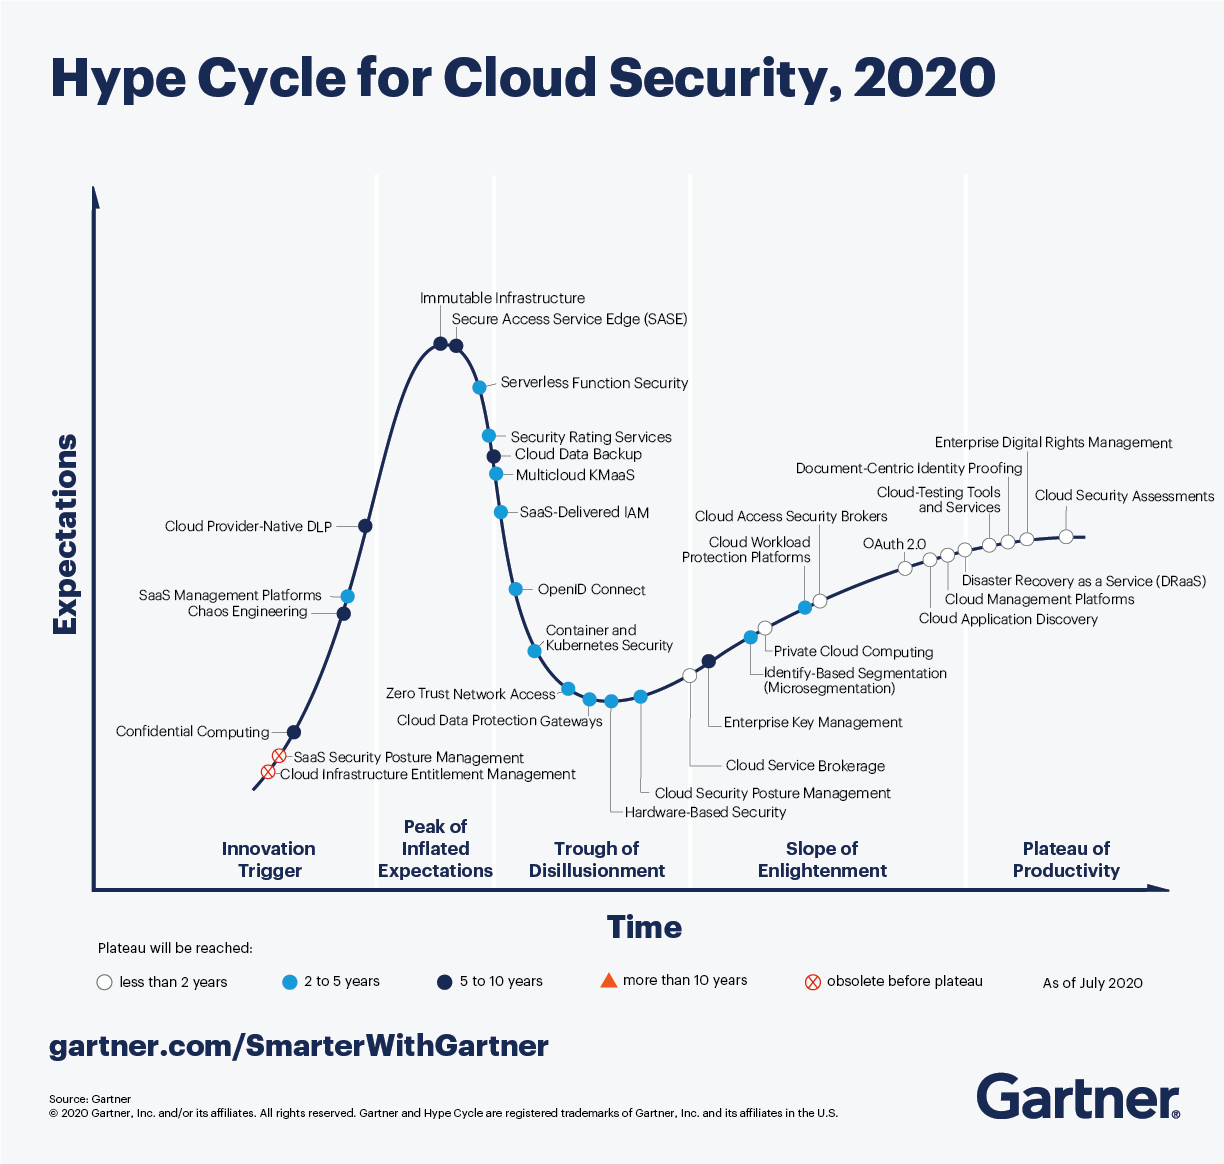 Hype Cycle for Cloud Security 2020